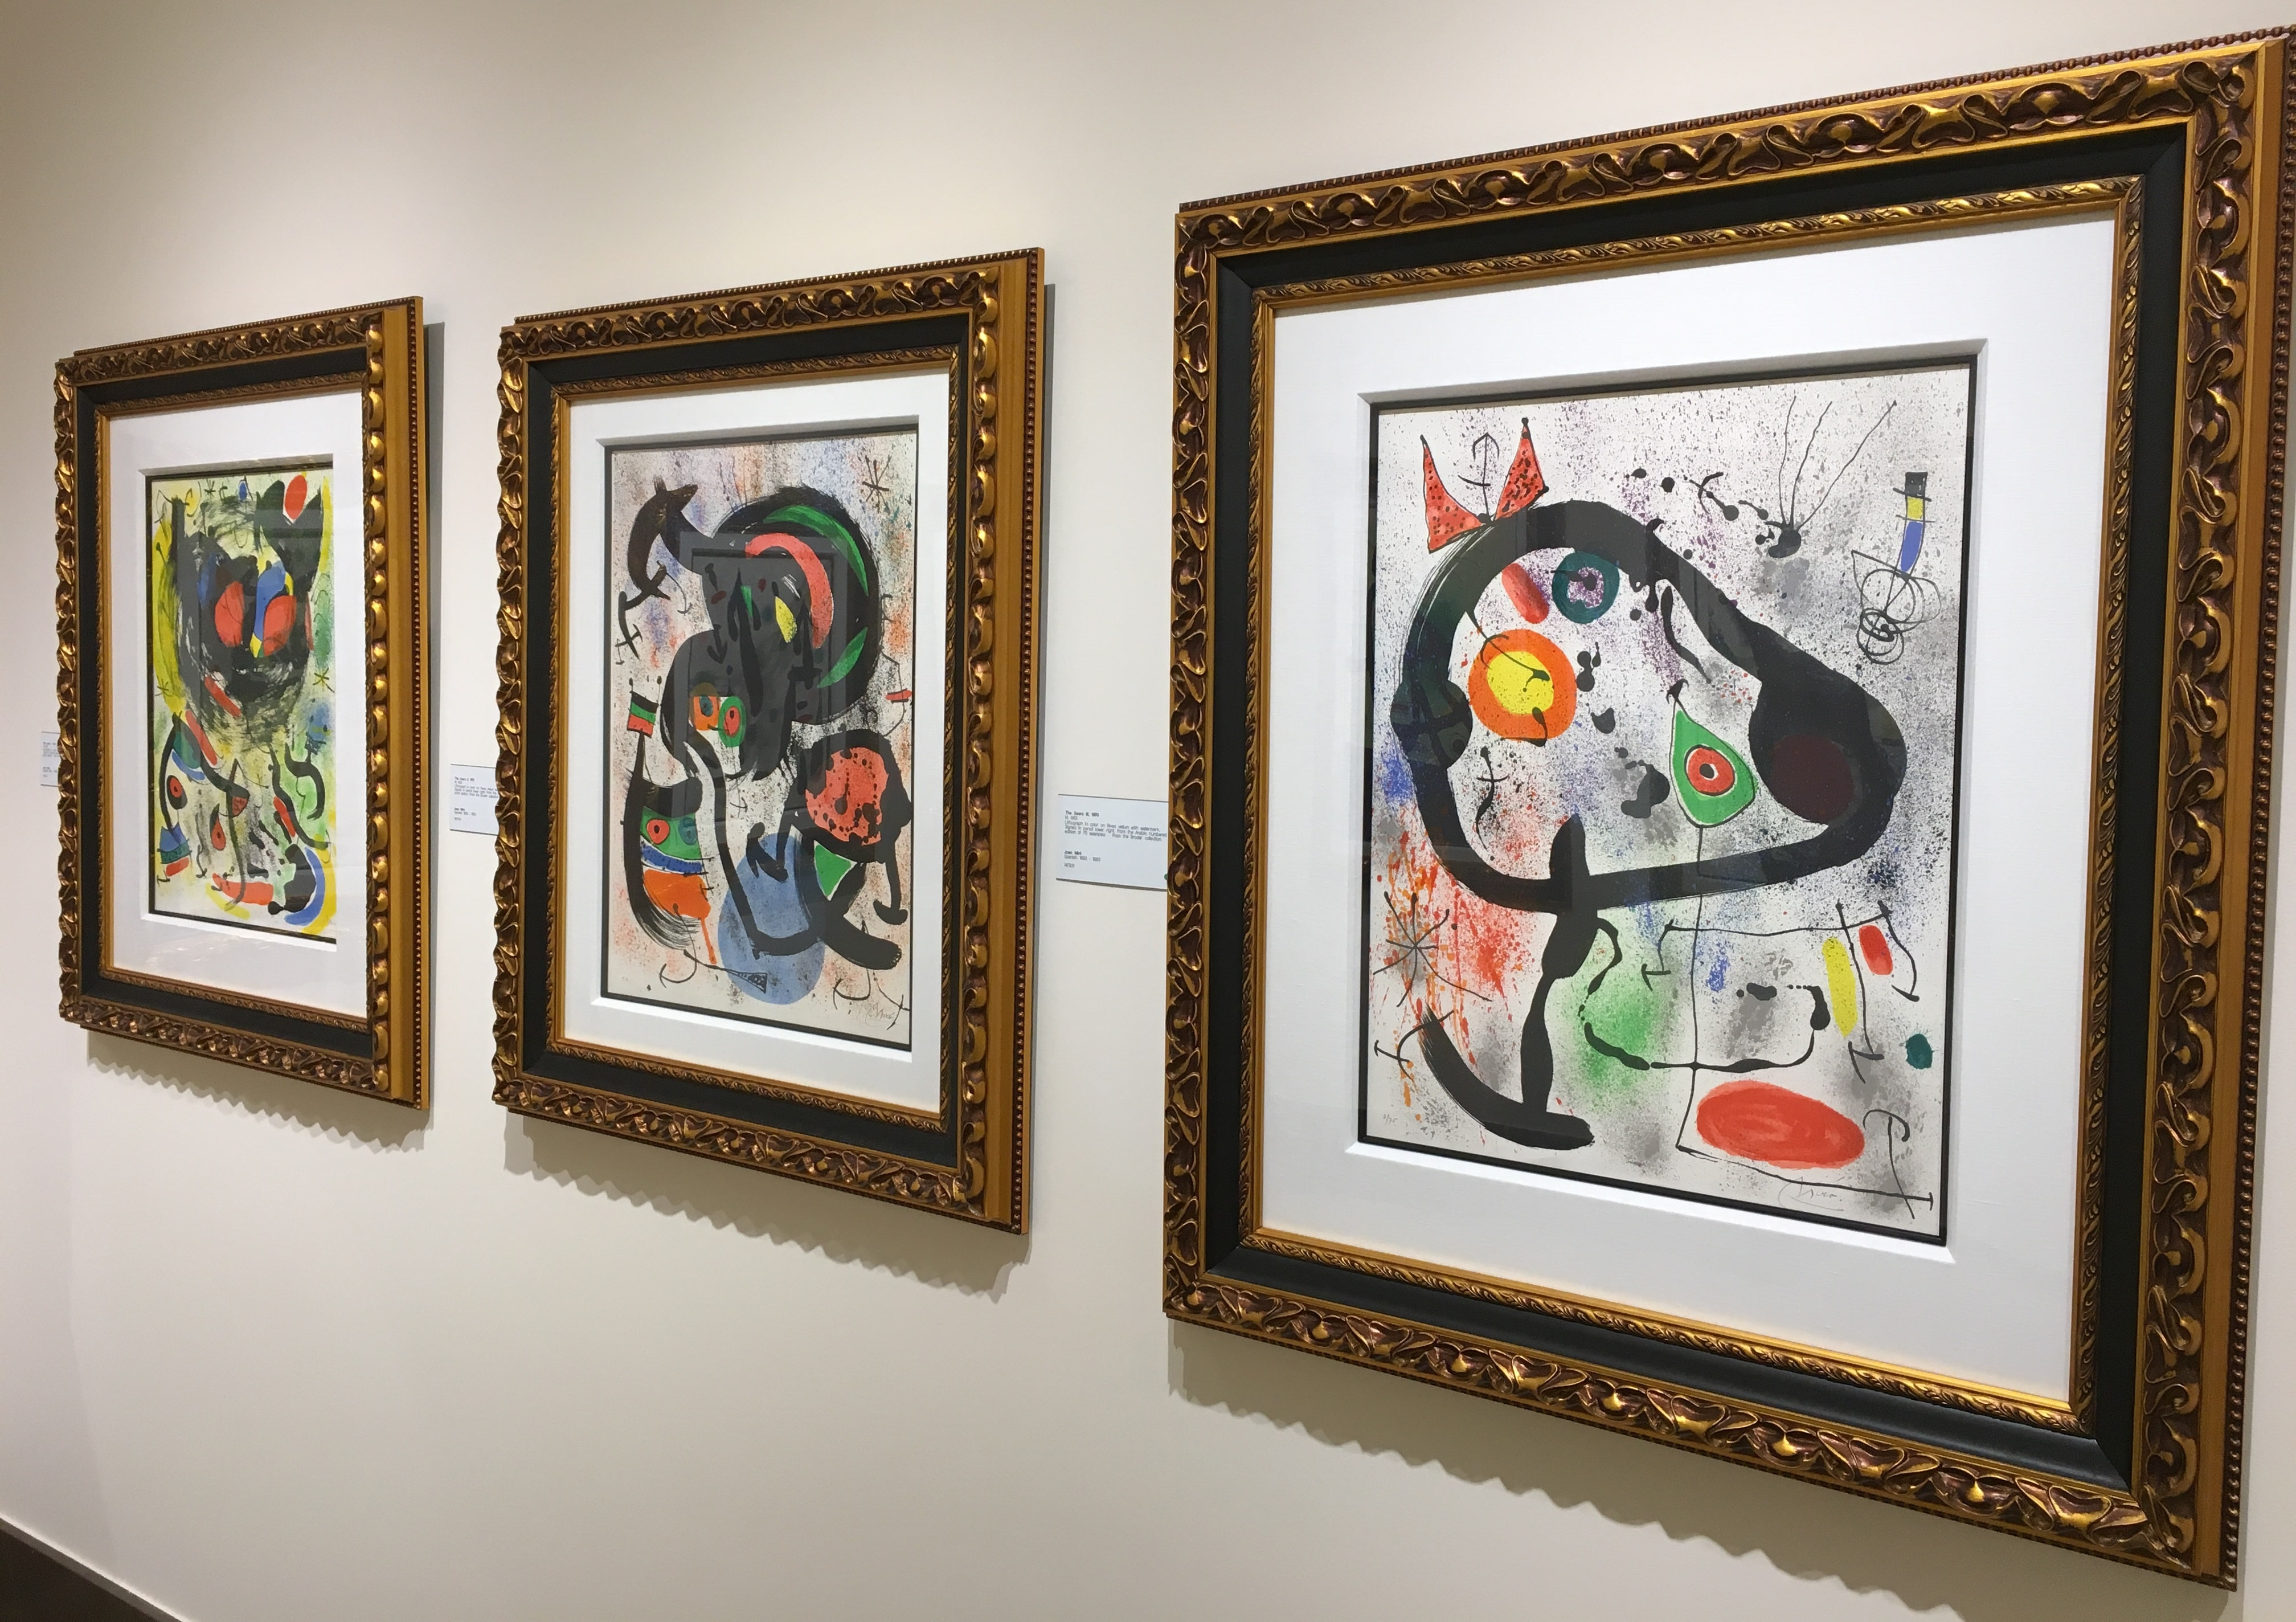 The Joan Miró Gallery at Park West Museum